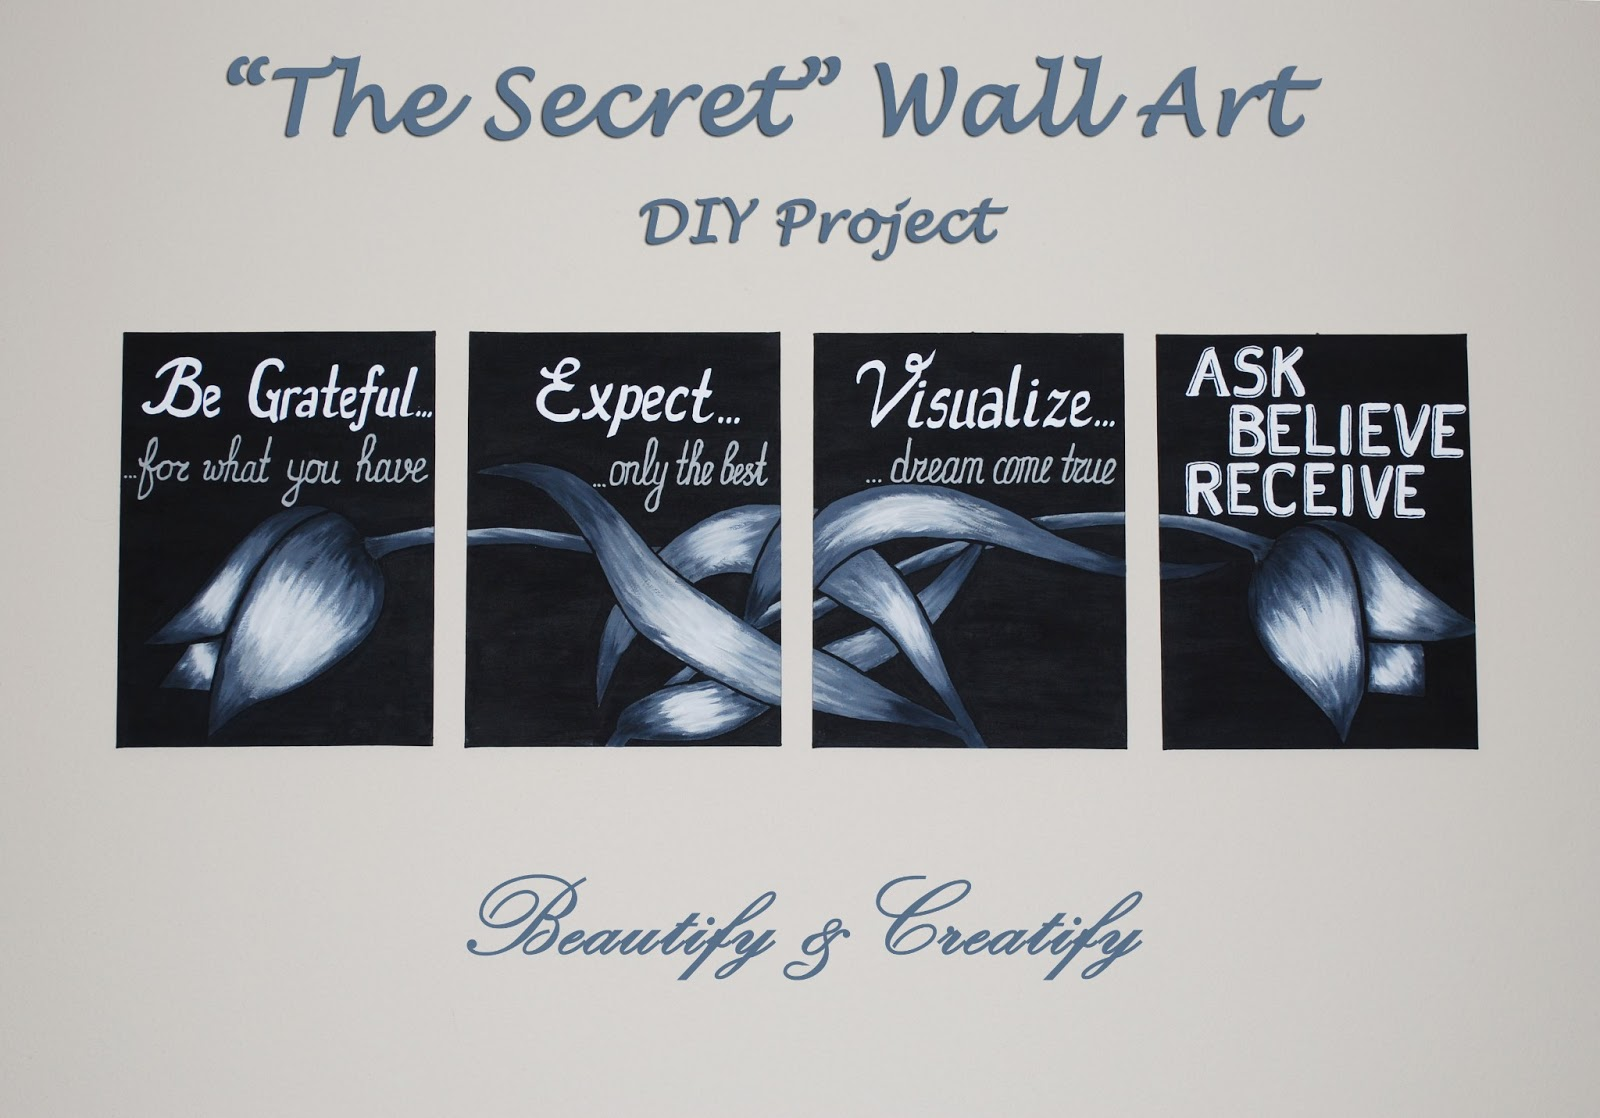 beautify and creatify the secret wall art diy project